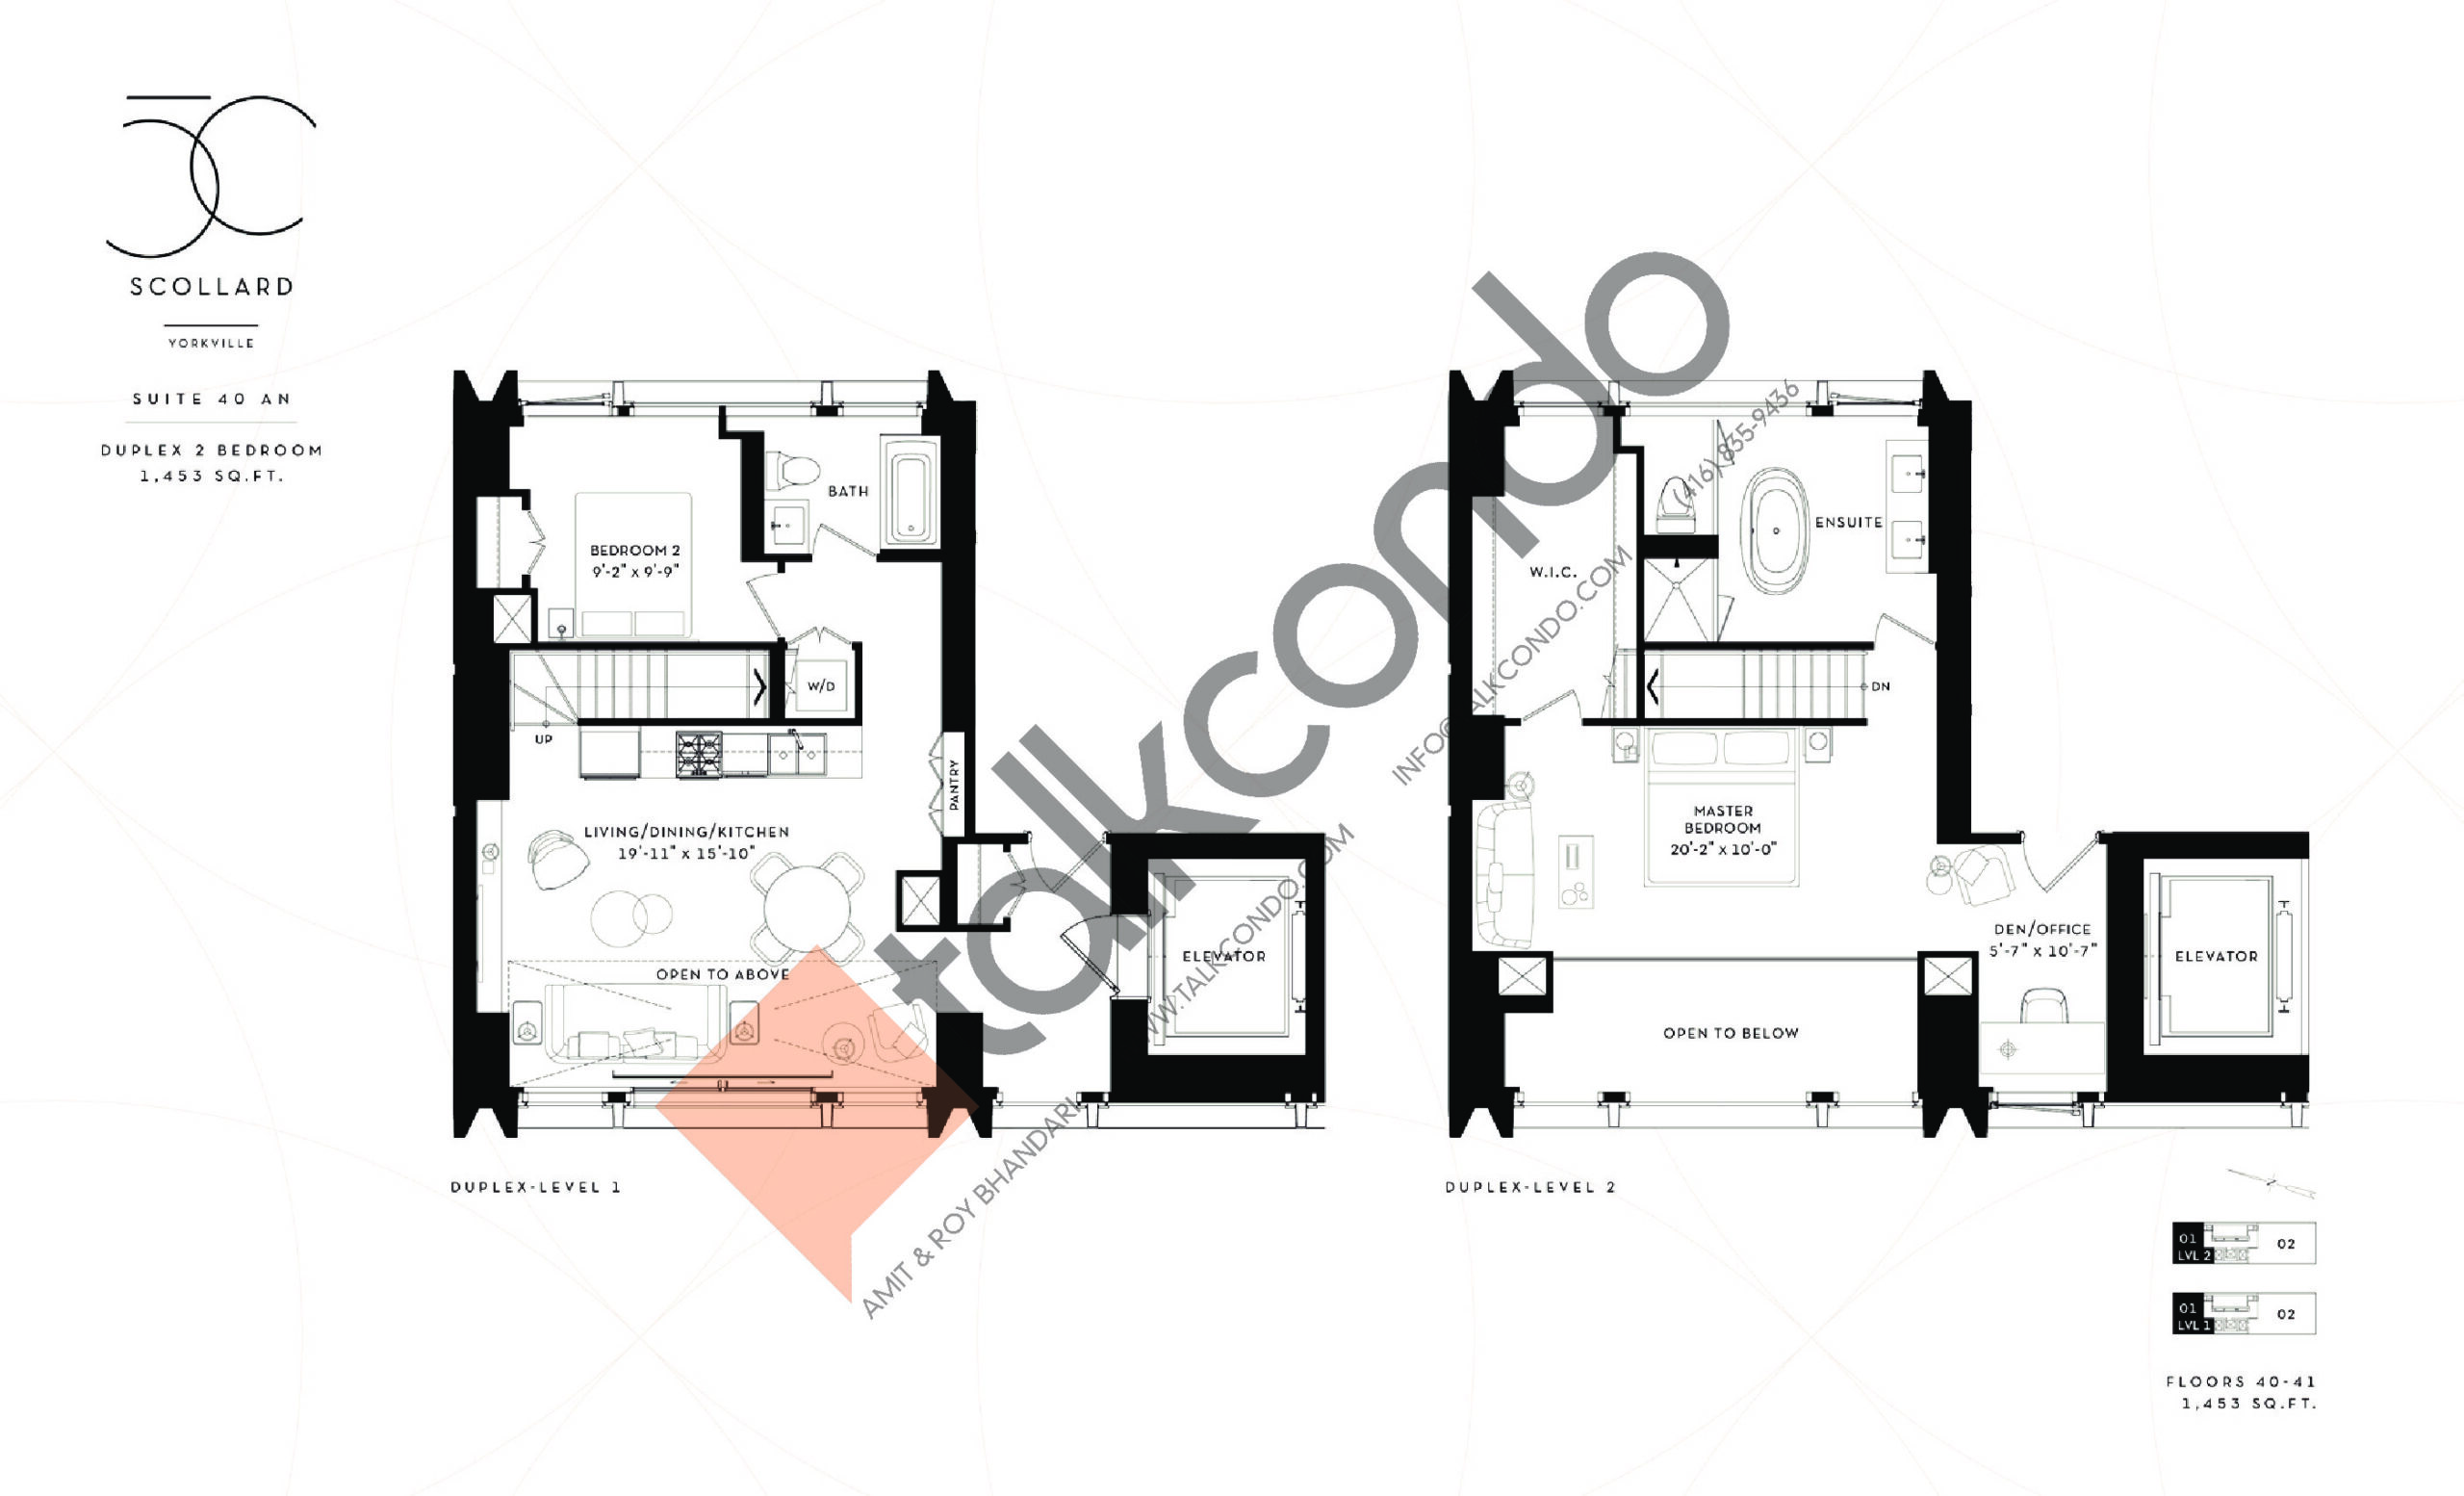 Suite 40 AN Floor Plan at Fifty Scollard Condos - 1453 sq.ft